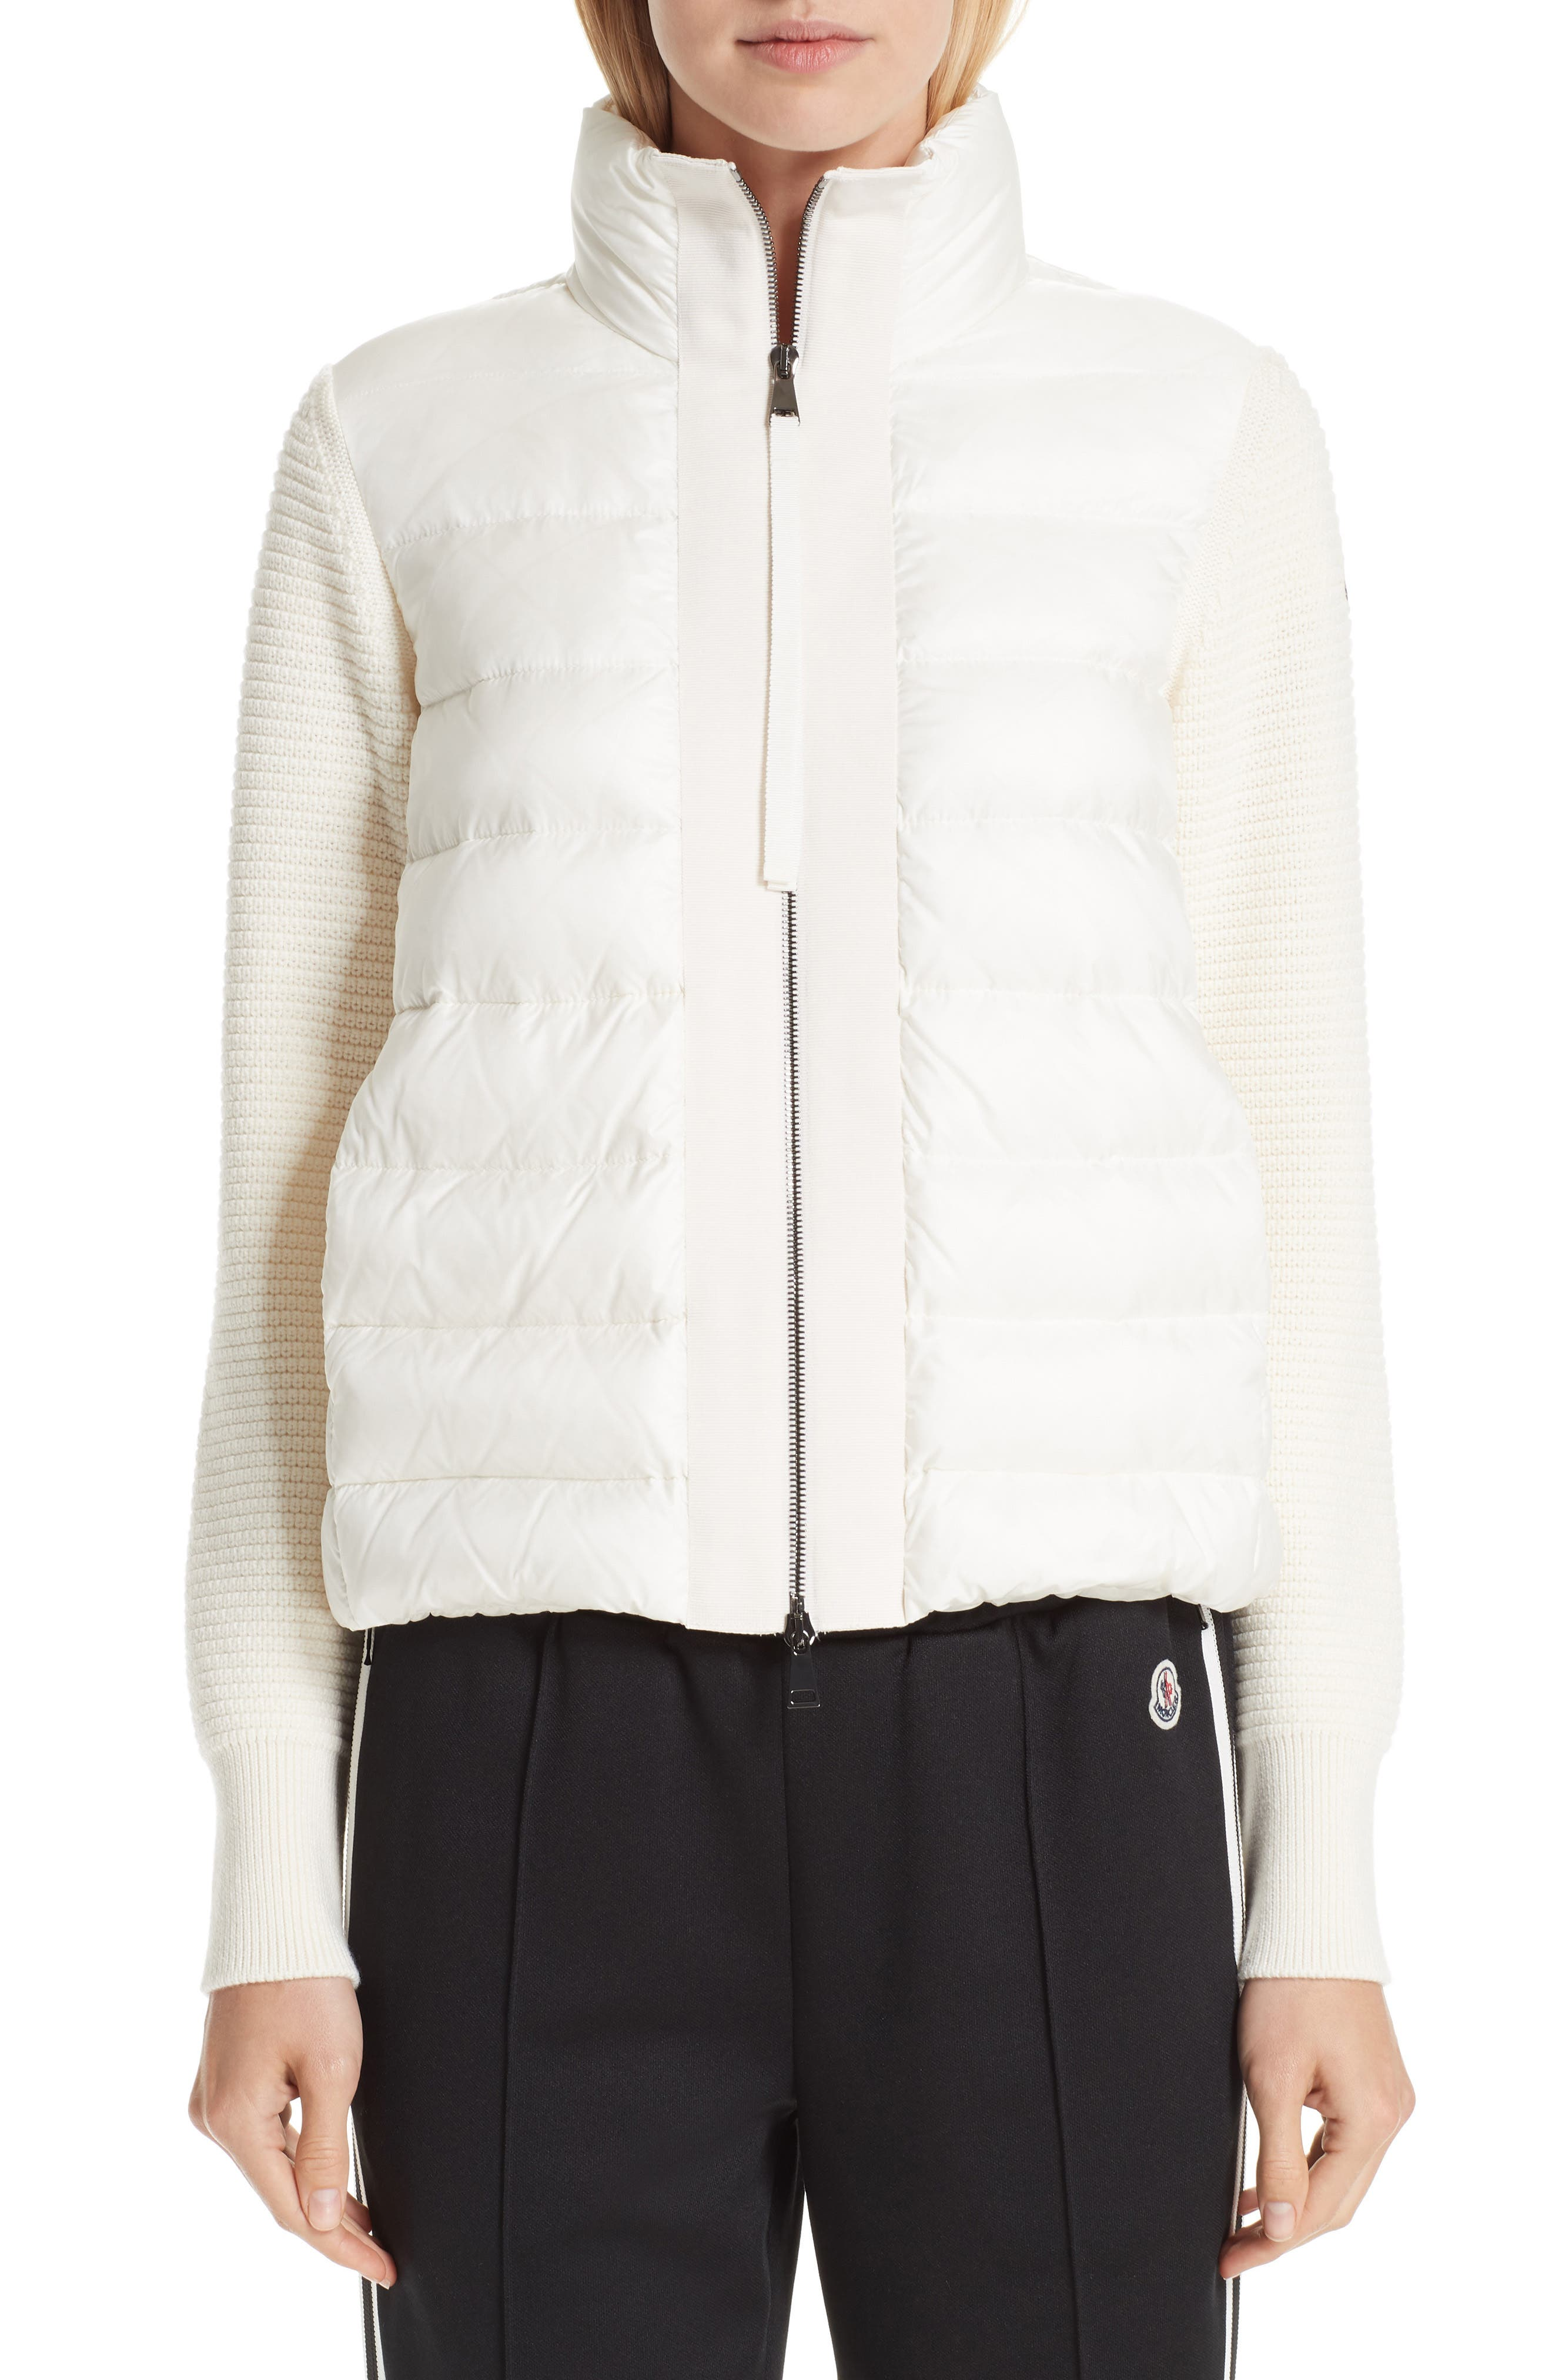 Moncler Cᄄᄁrdigans Chica